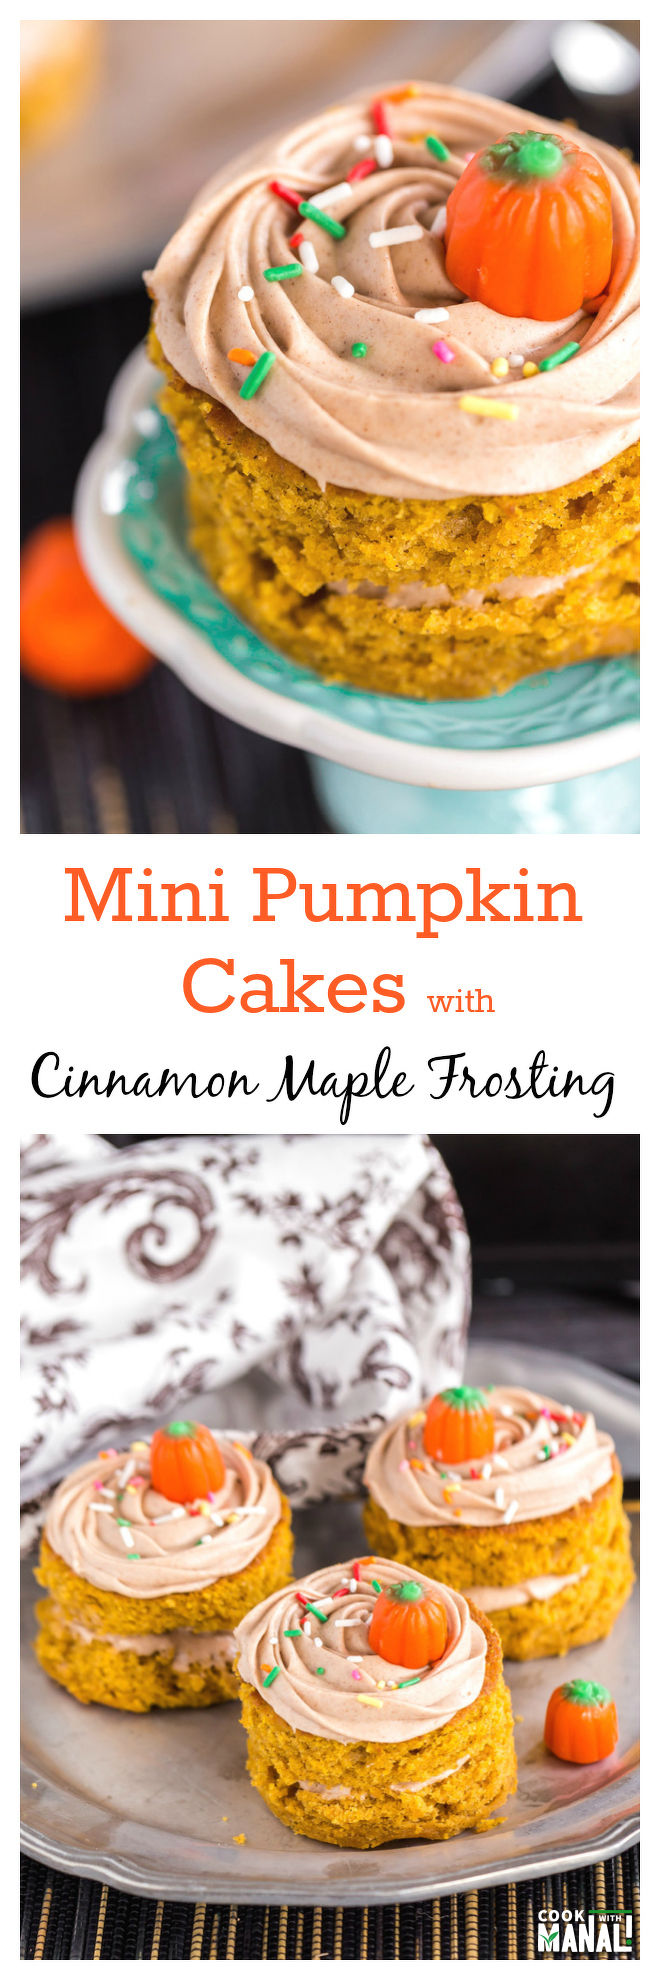 Mini Pumpkin Cakes Collage